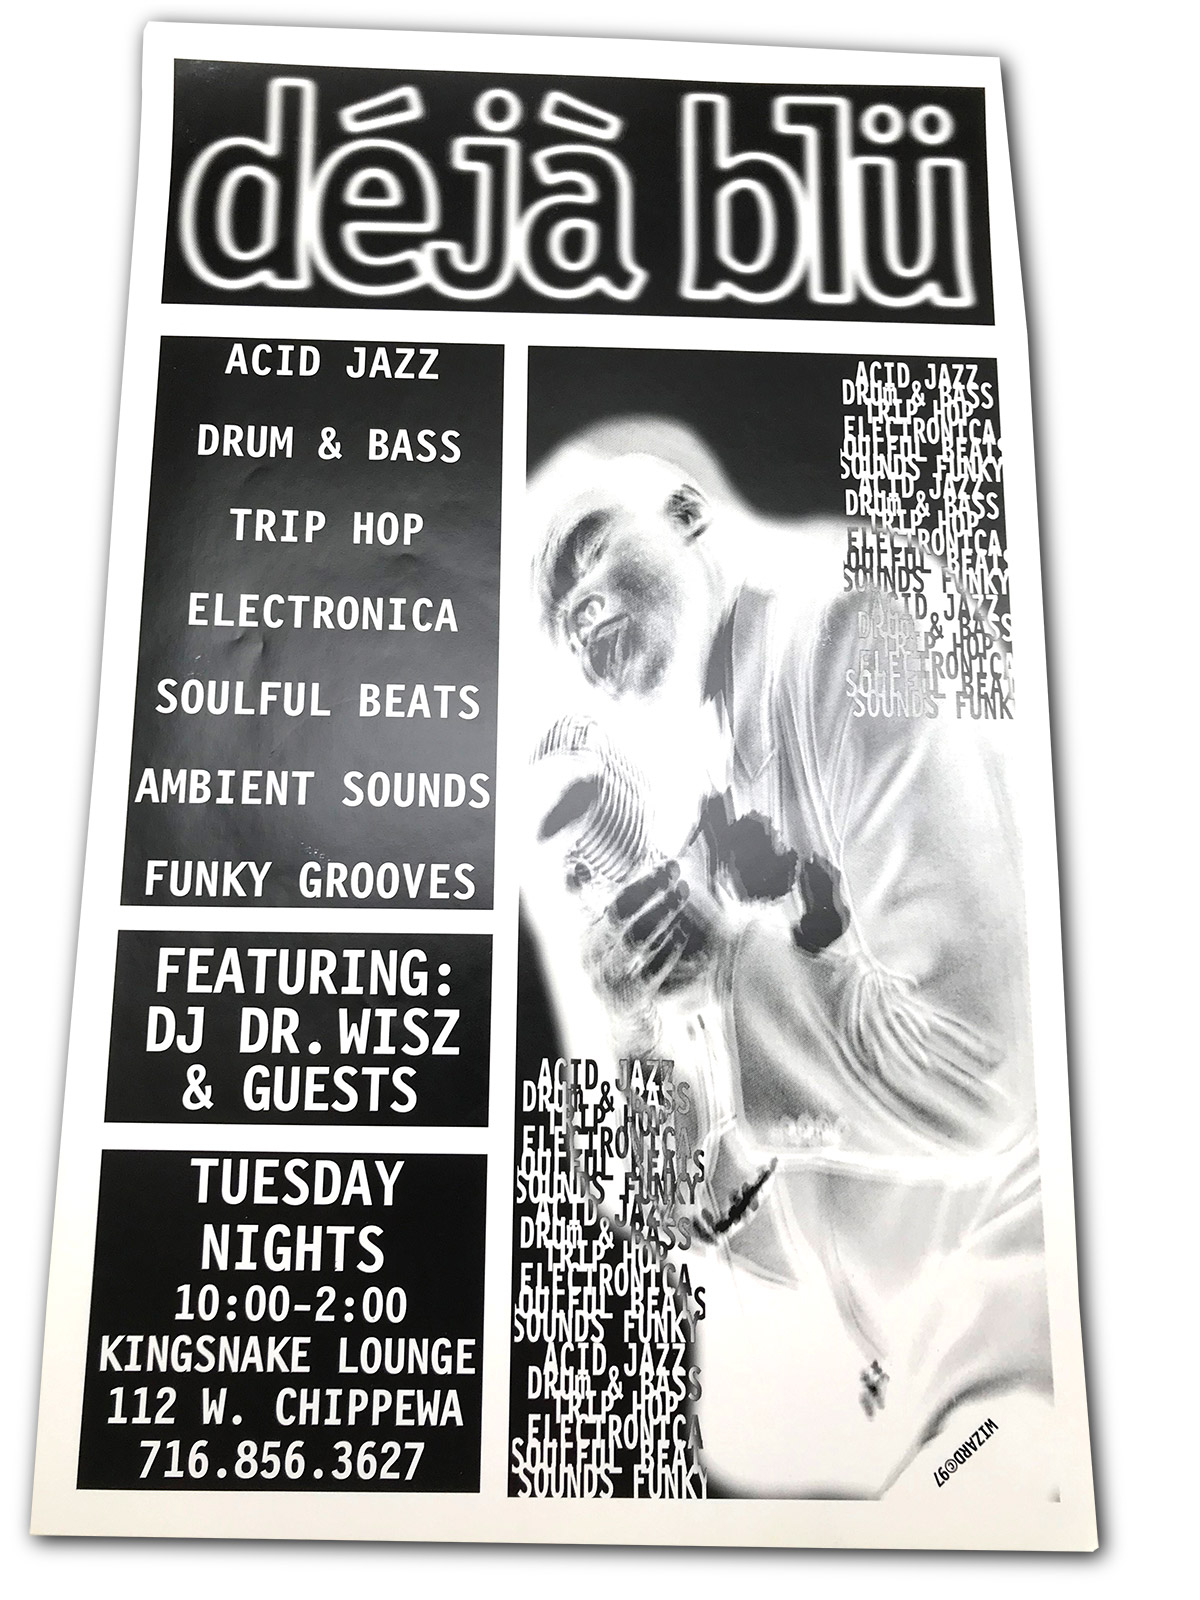 deja blu, dejablu, d, dr wis, dj scotty, mark wisz, buffalo nt, rock poster design, kingsnake lounge, buffalo, ny